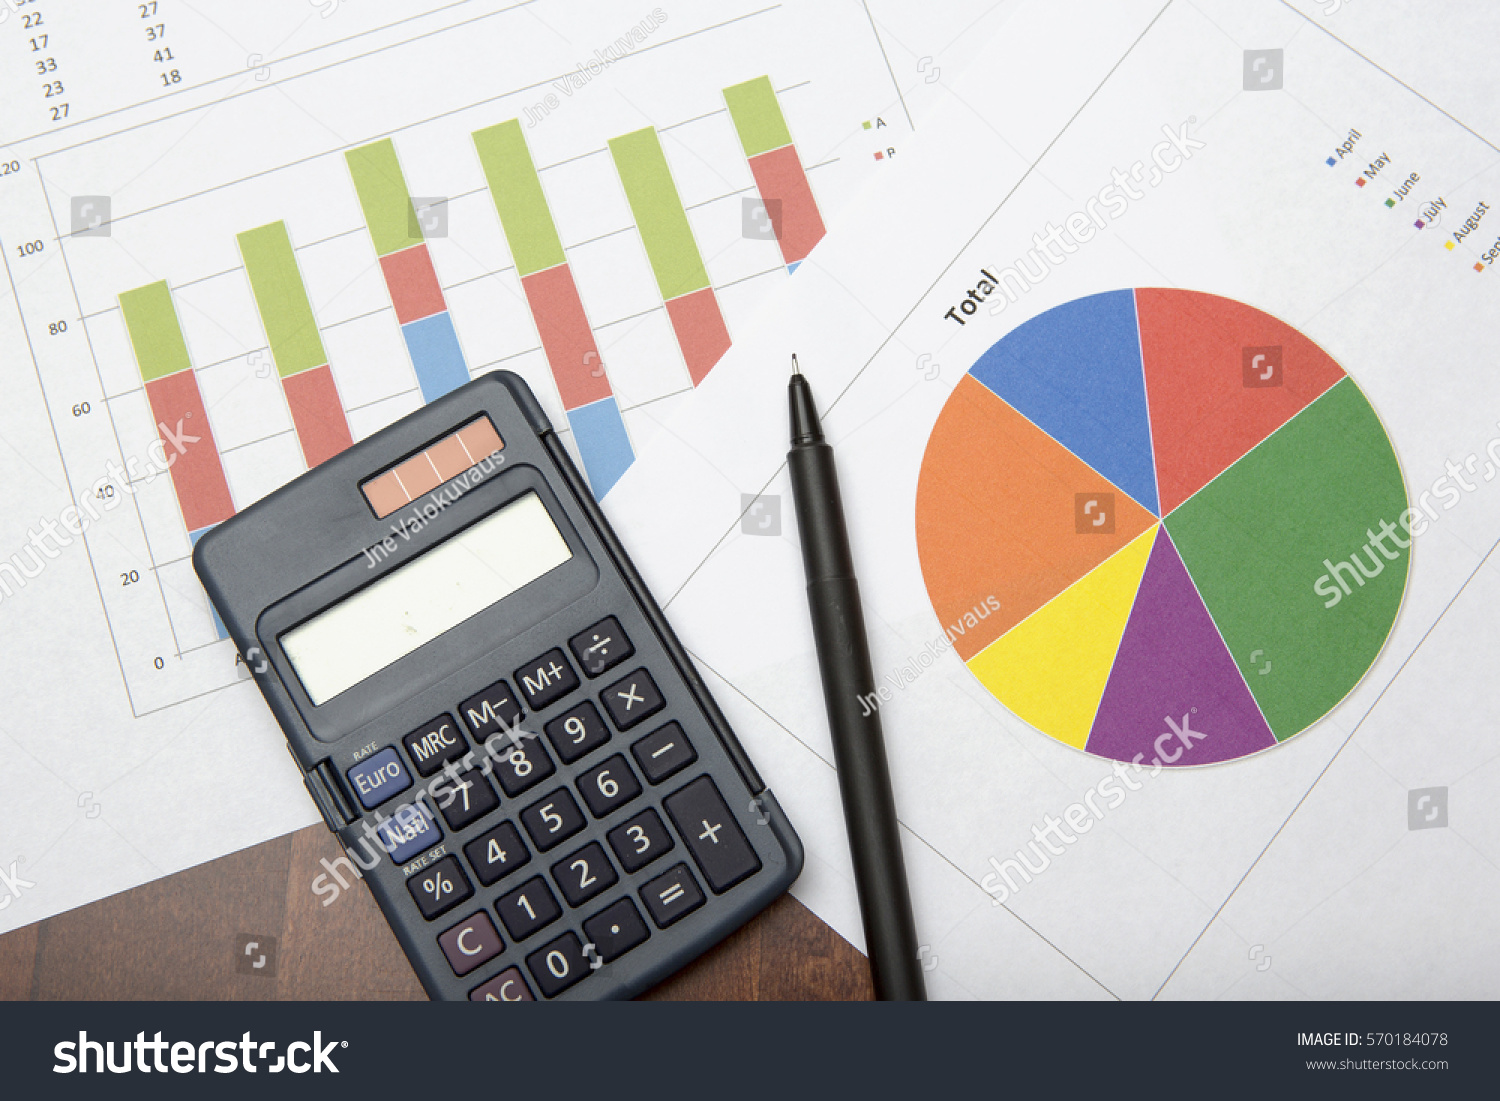 Business concept image pie chart bar stock photo 570184078 pie chart and bar chart for analysis of sales calculator and ccuart Image collections